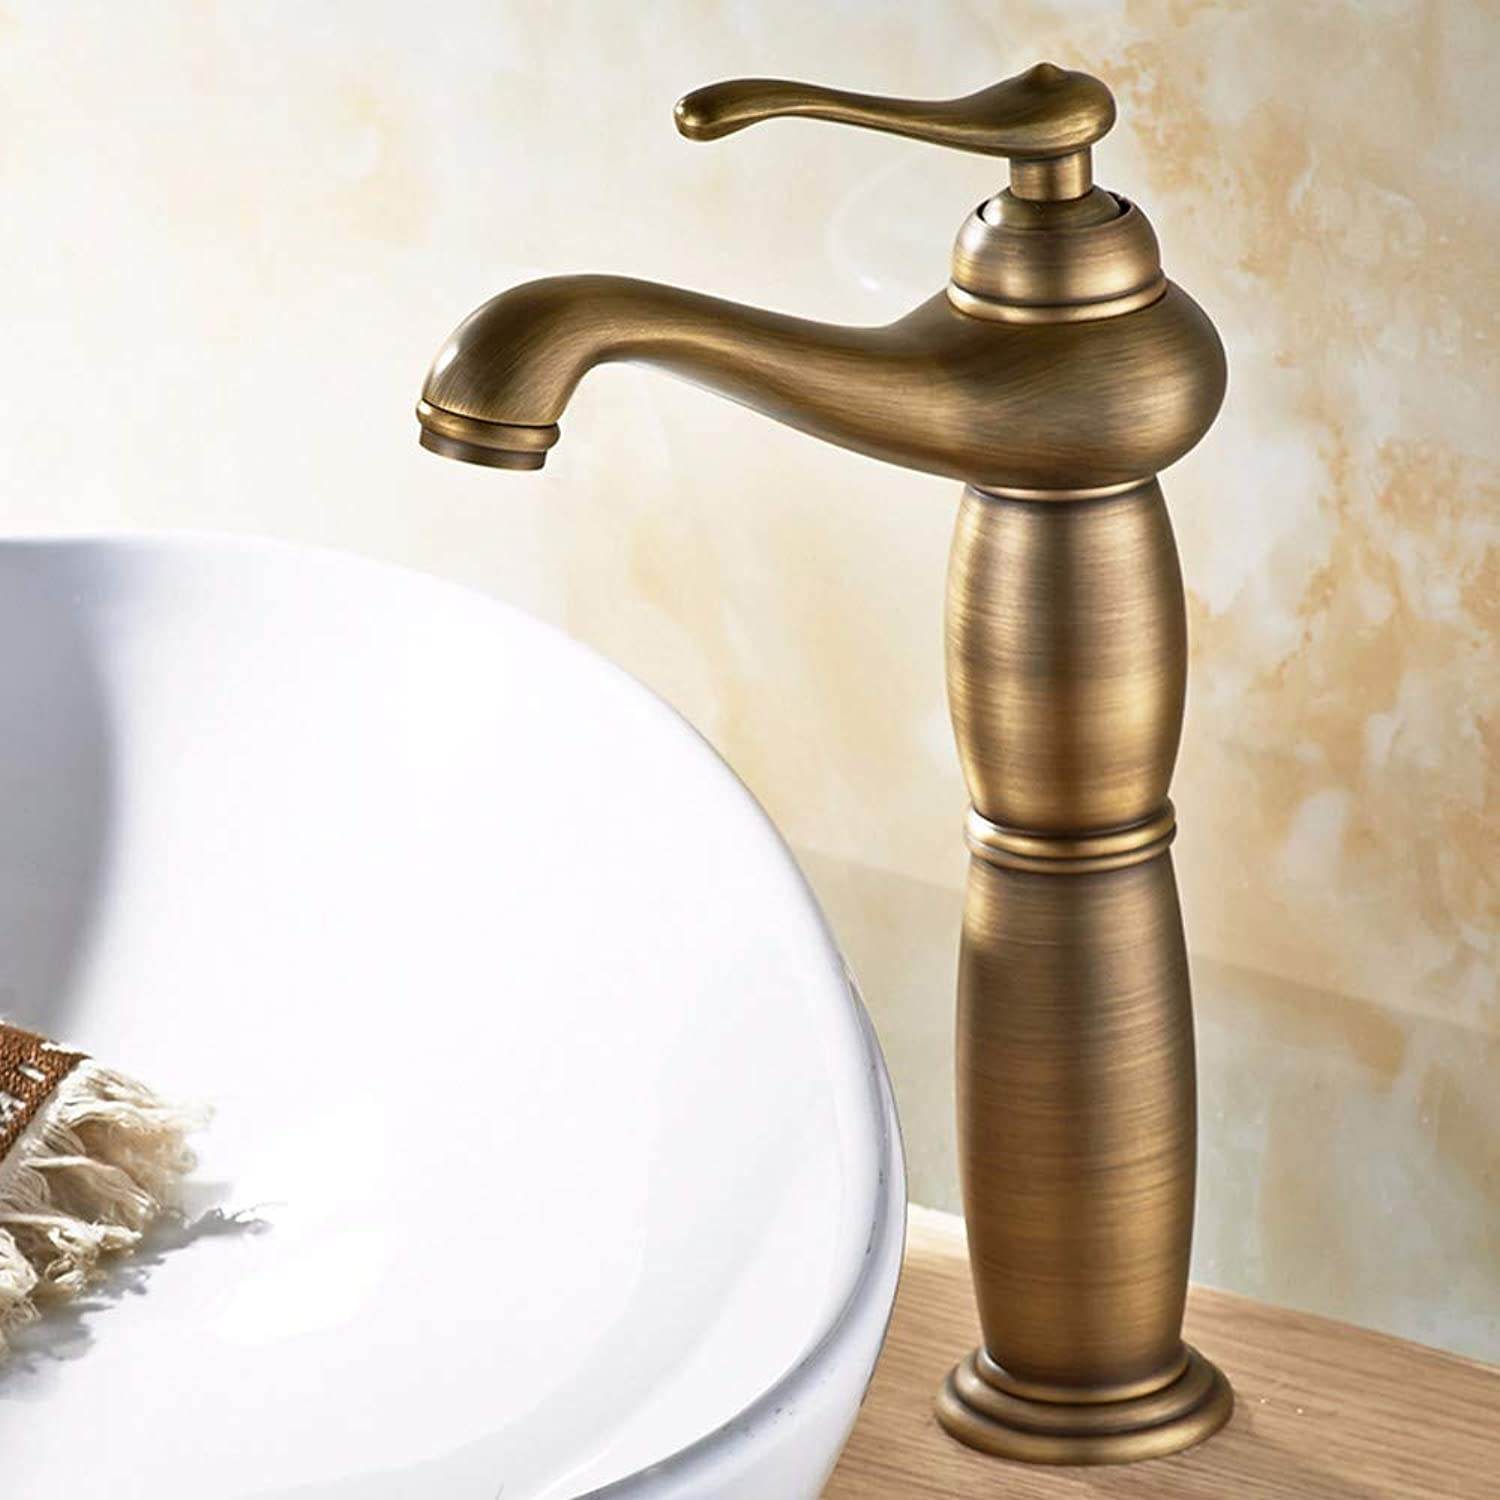 LHbox Basin Mixer Tap Bathroom Sink Faucet Antique-brass hot and cold basin faucet, a European-style toilet and wash basin mixer with high surface sink single hole faucet, B